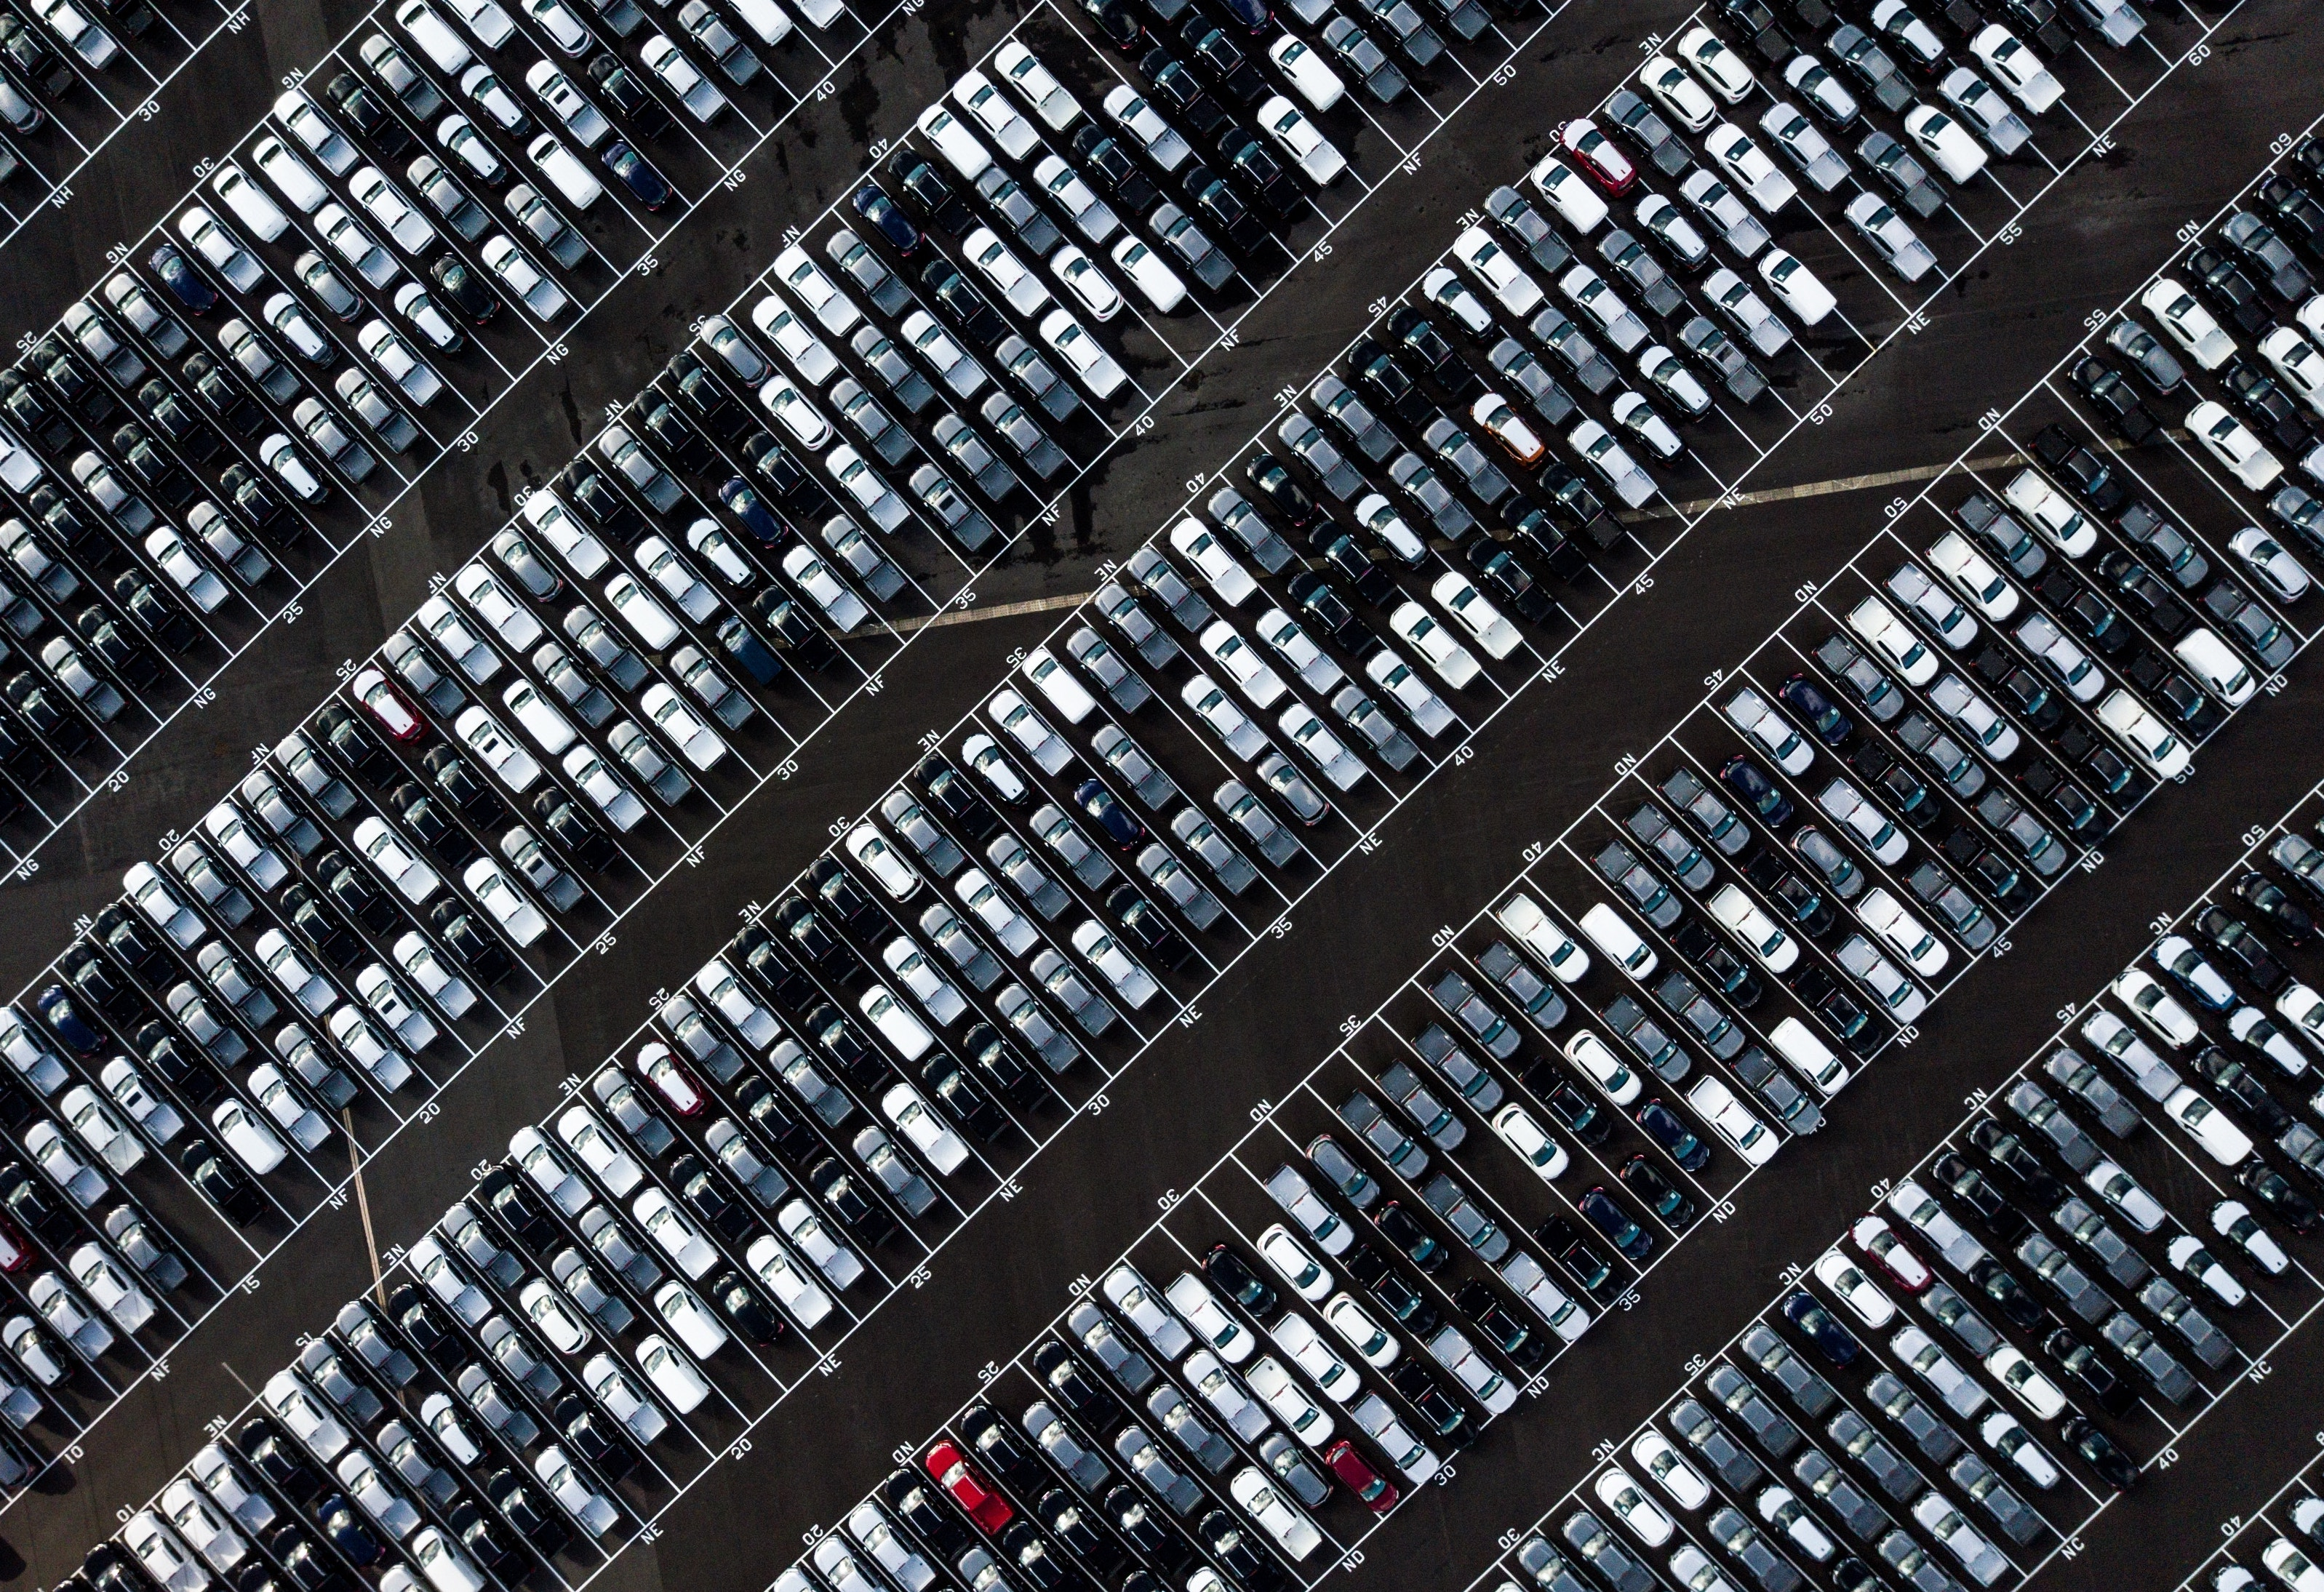 Parking lot overhead view